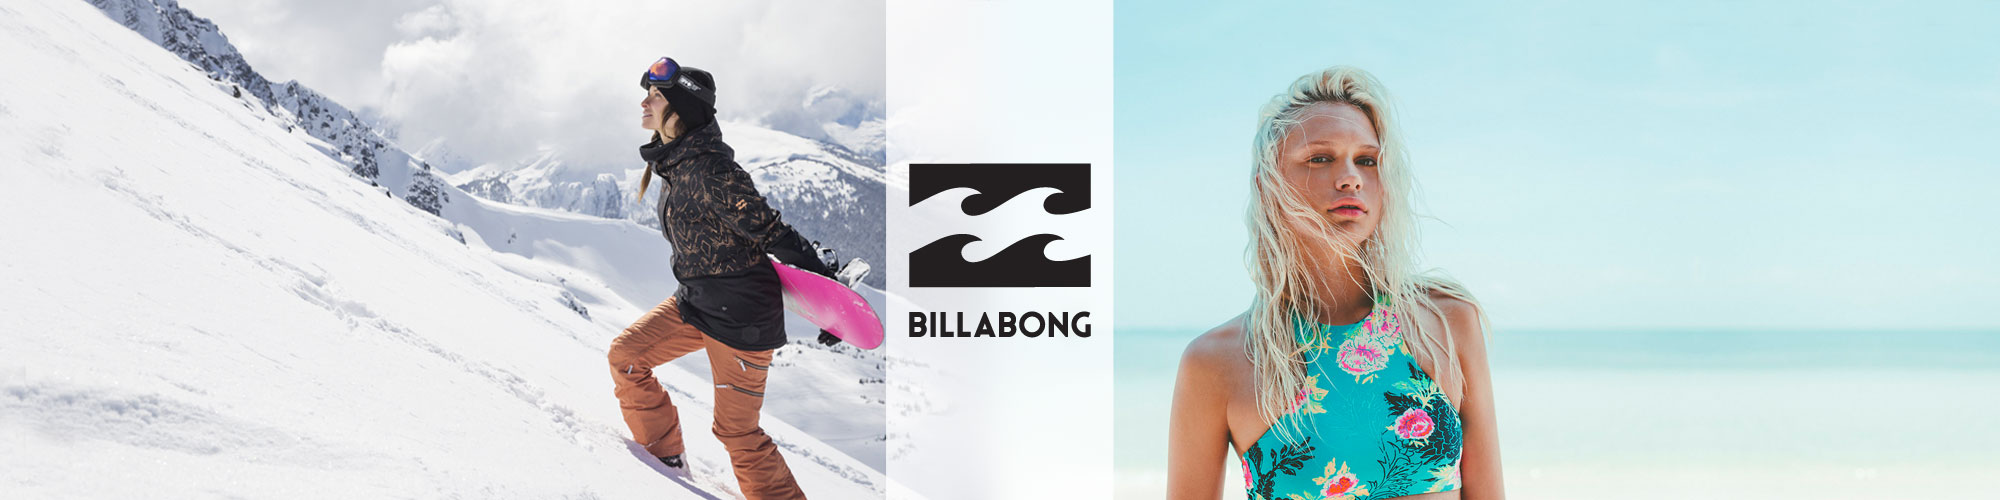 Billabong snow apparel, swimwear, clothing